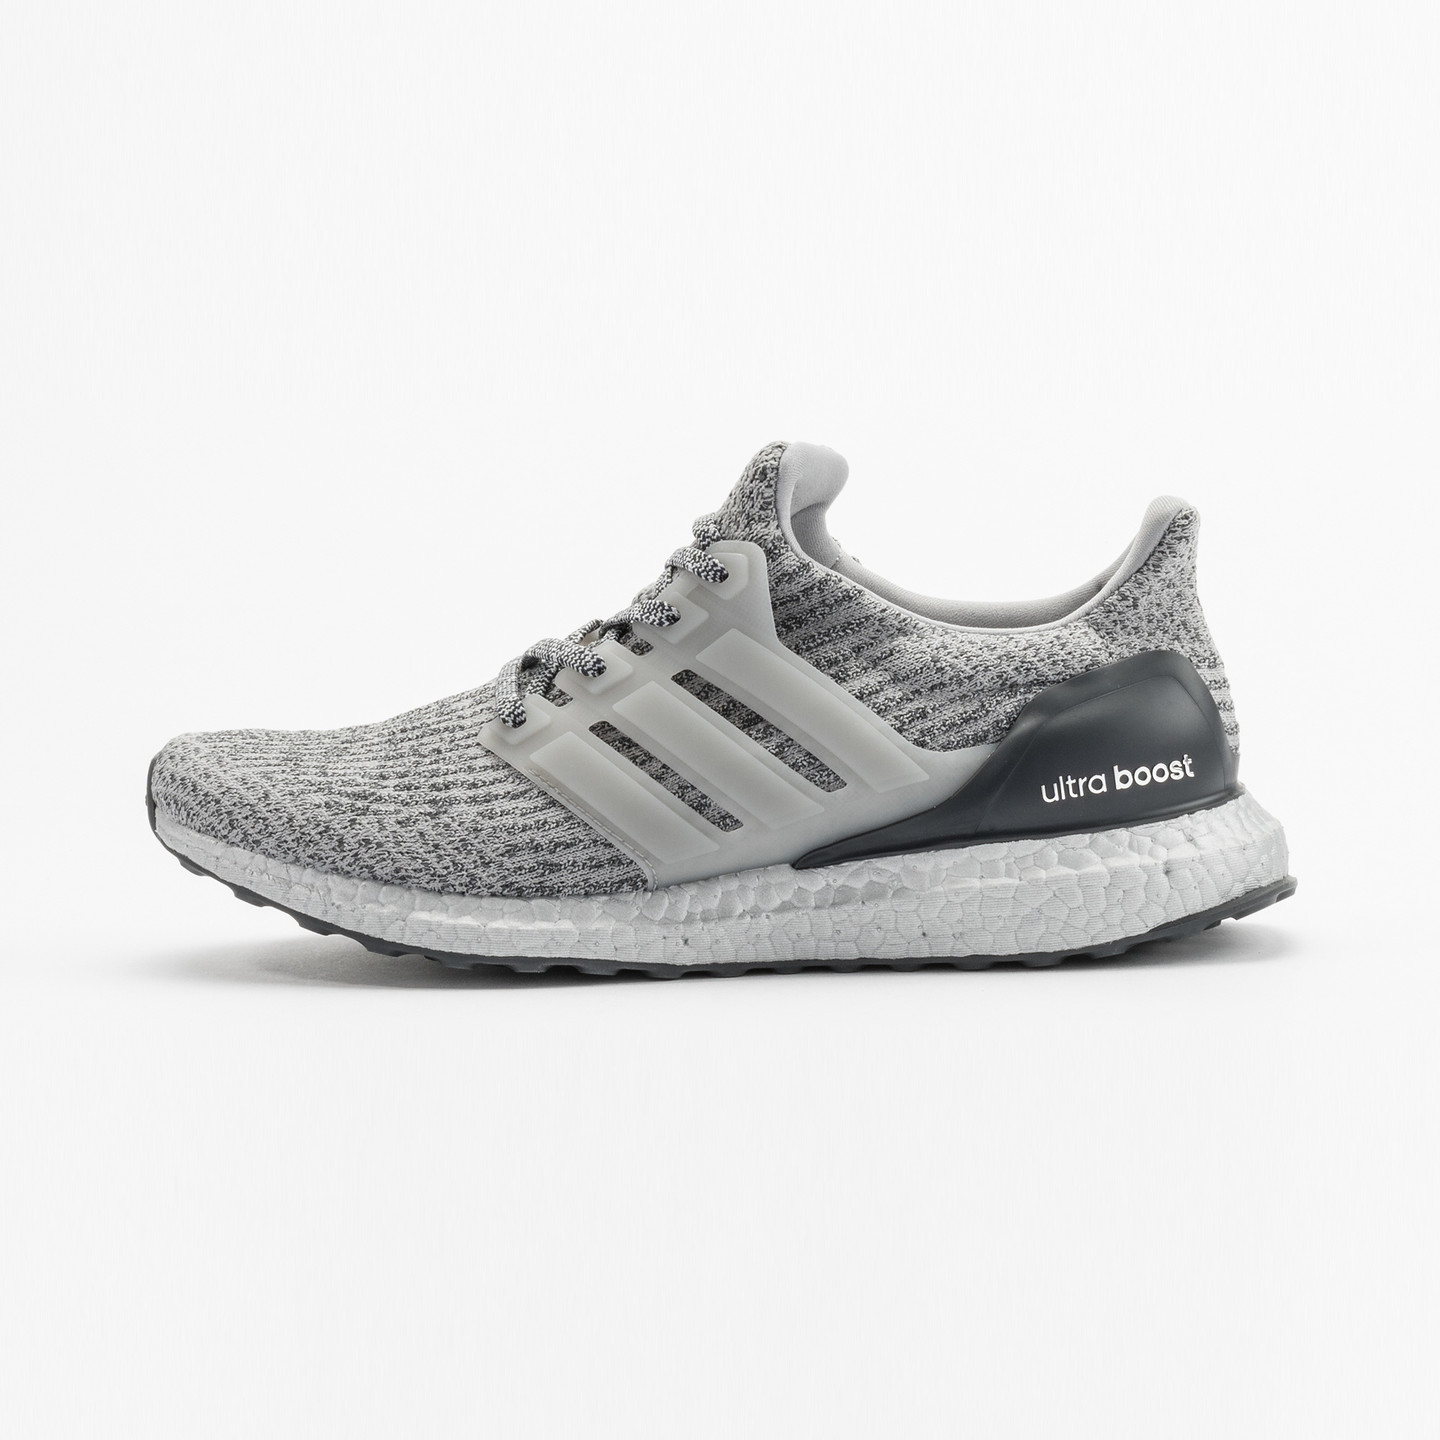 Adidas Ultra Boost 3.0 'Super Bowl' Silver Grey BA8143-45.33